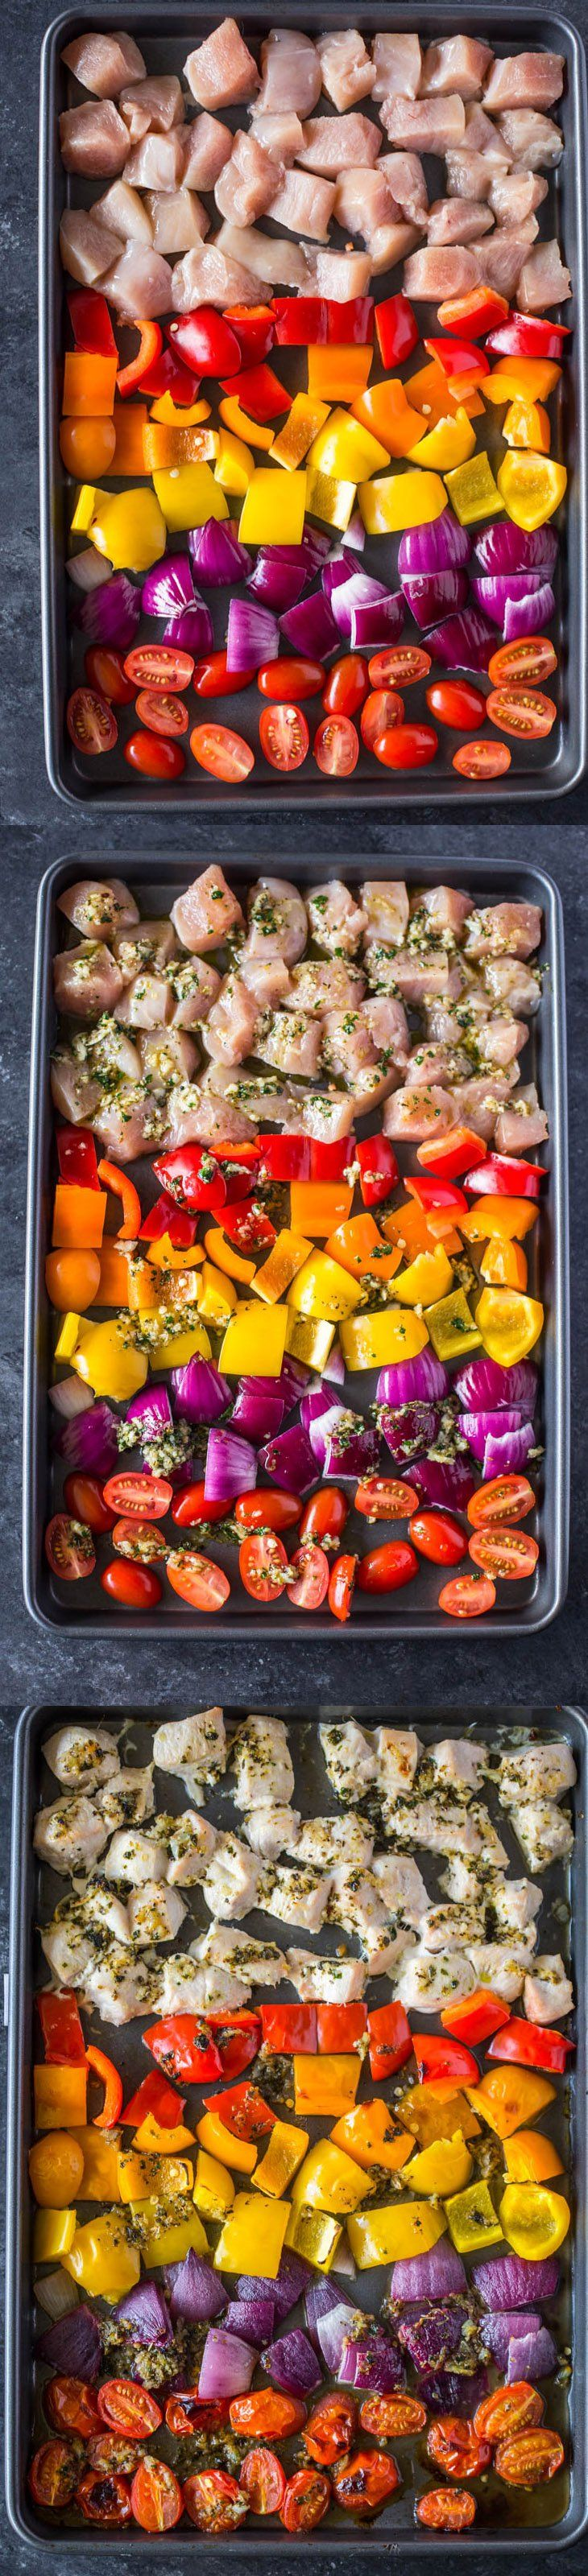 Sheet Pan Greek Chicken & Veggies with brown rice… make a batch for the week